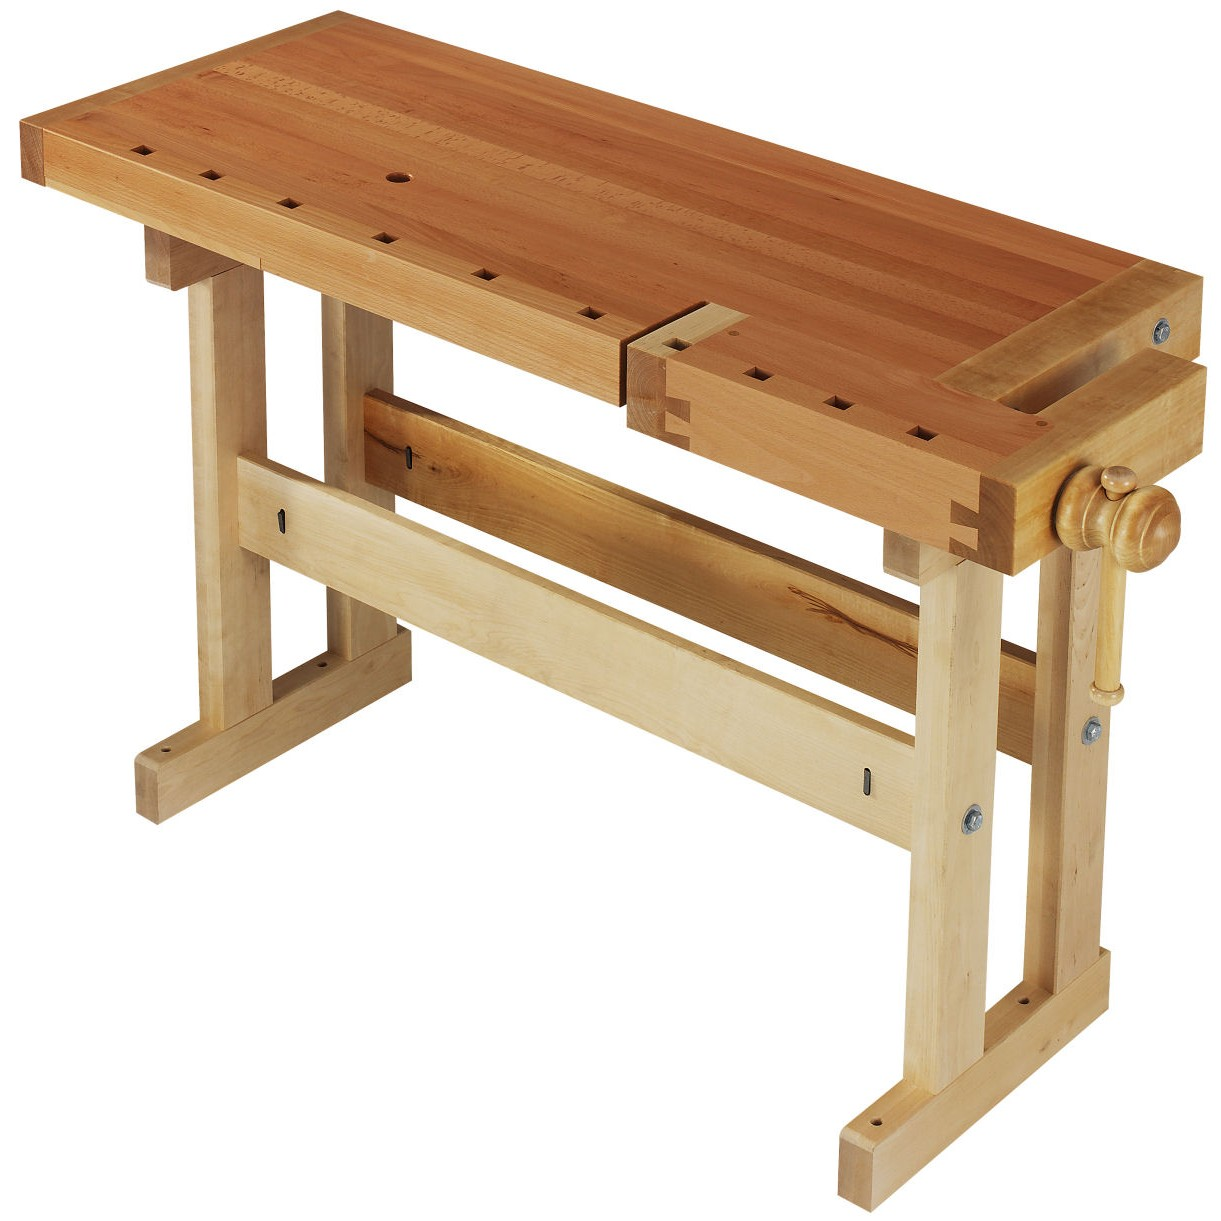 Sj Bergs Wooden Trestle For Bench Top 110 850 Mm